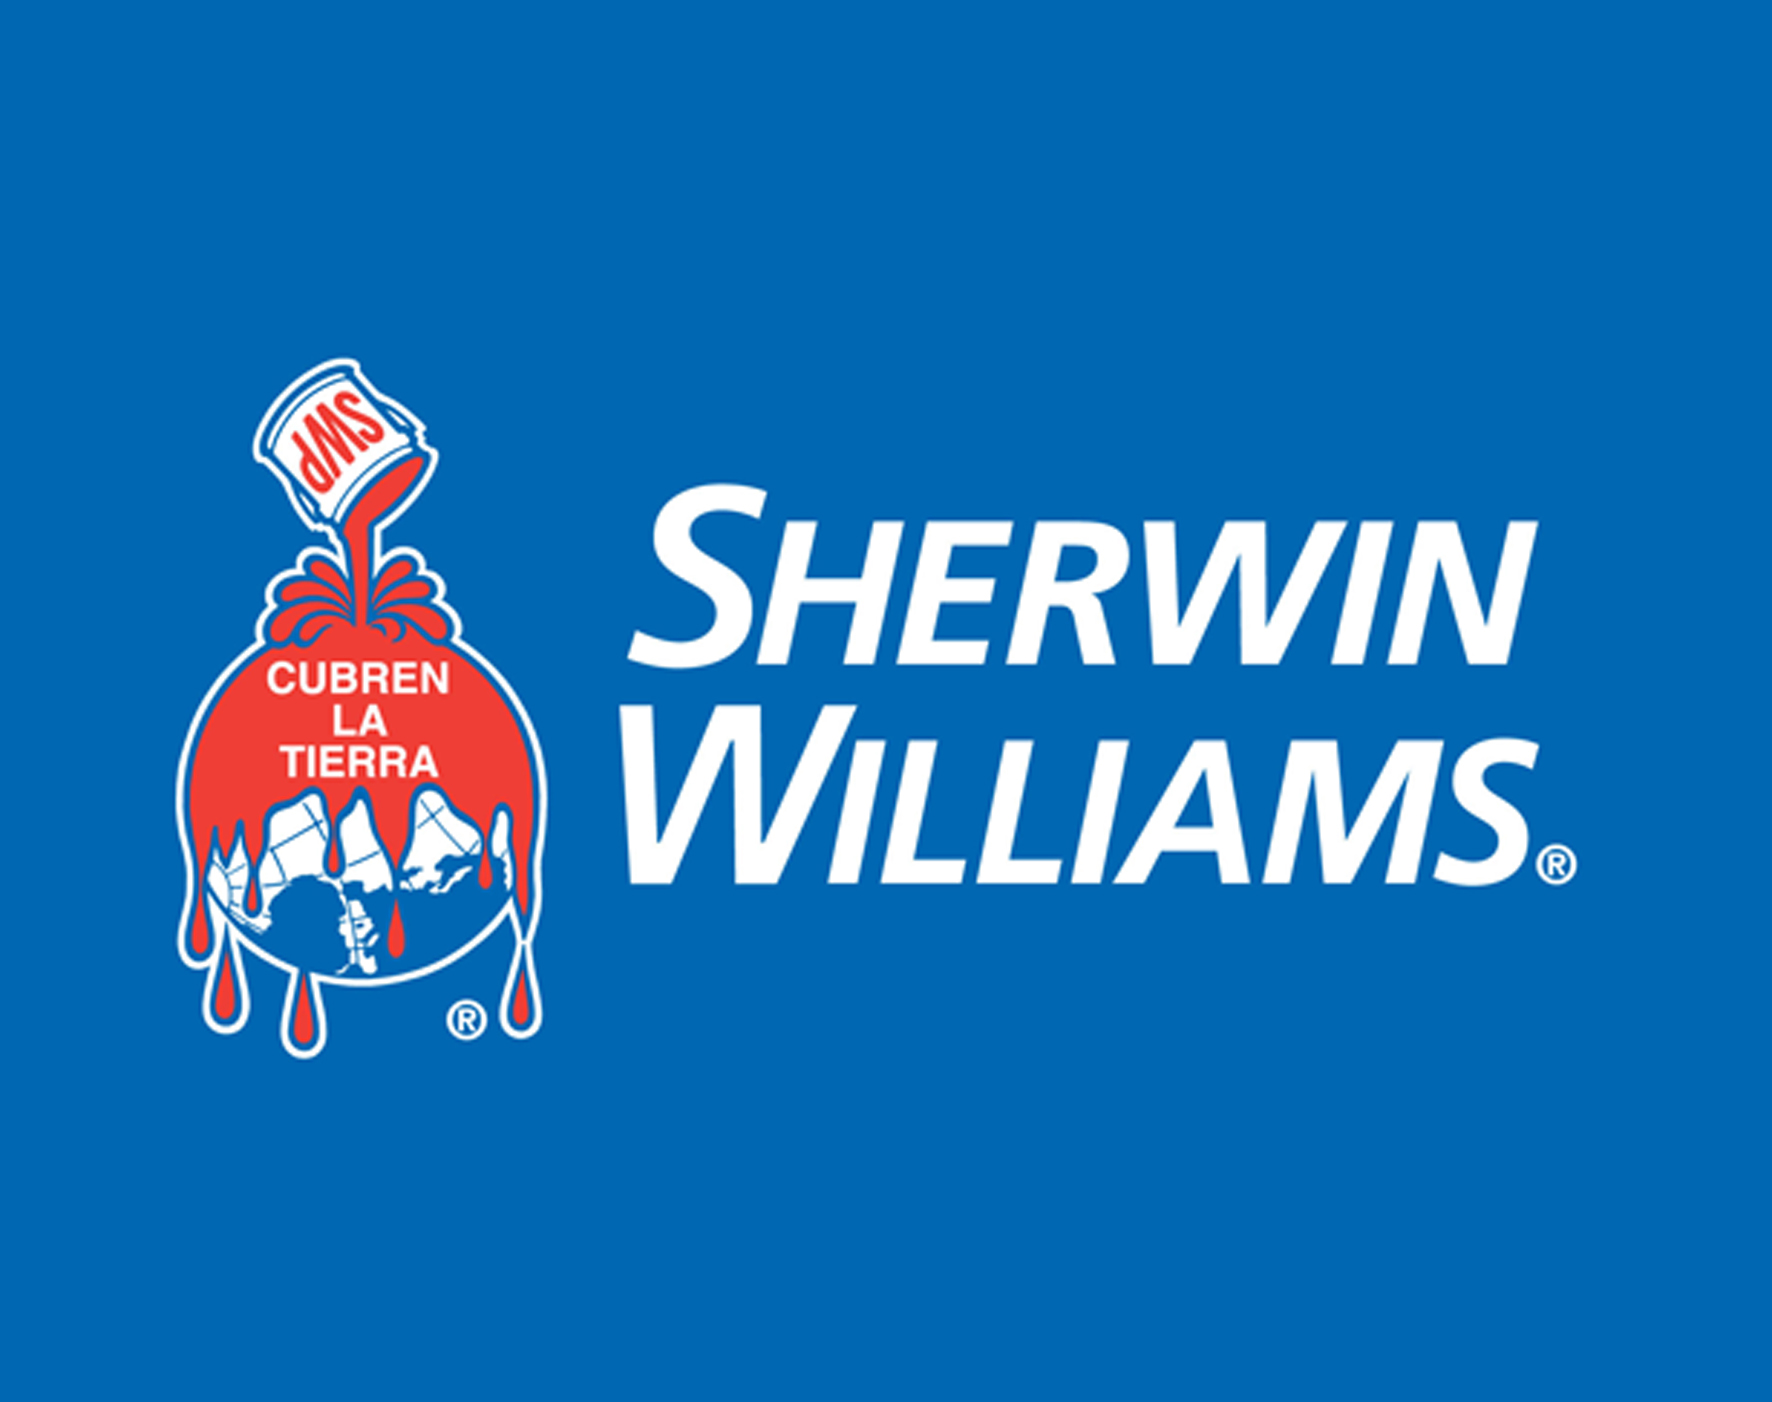 Cliente Sherwin Williams